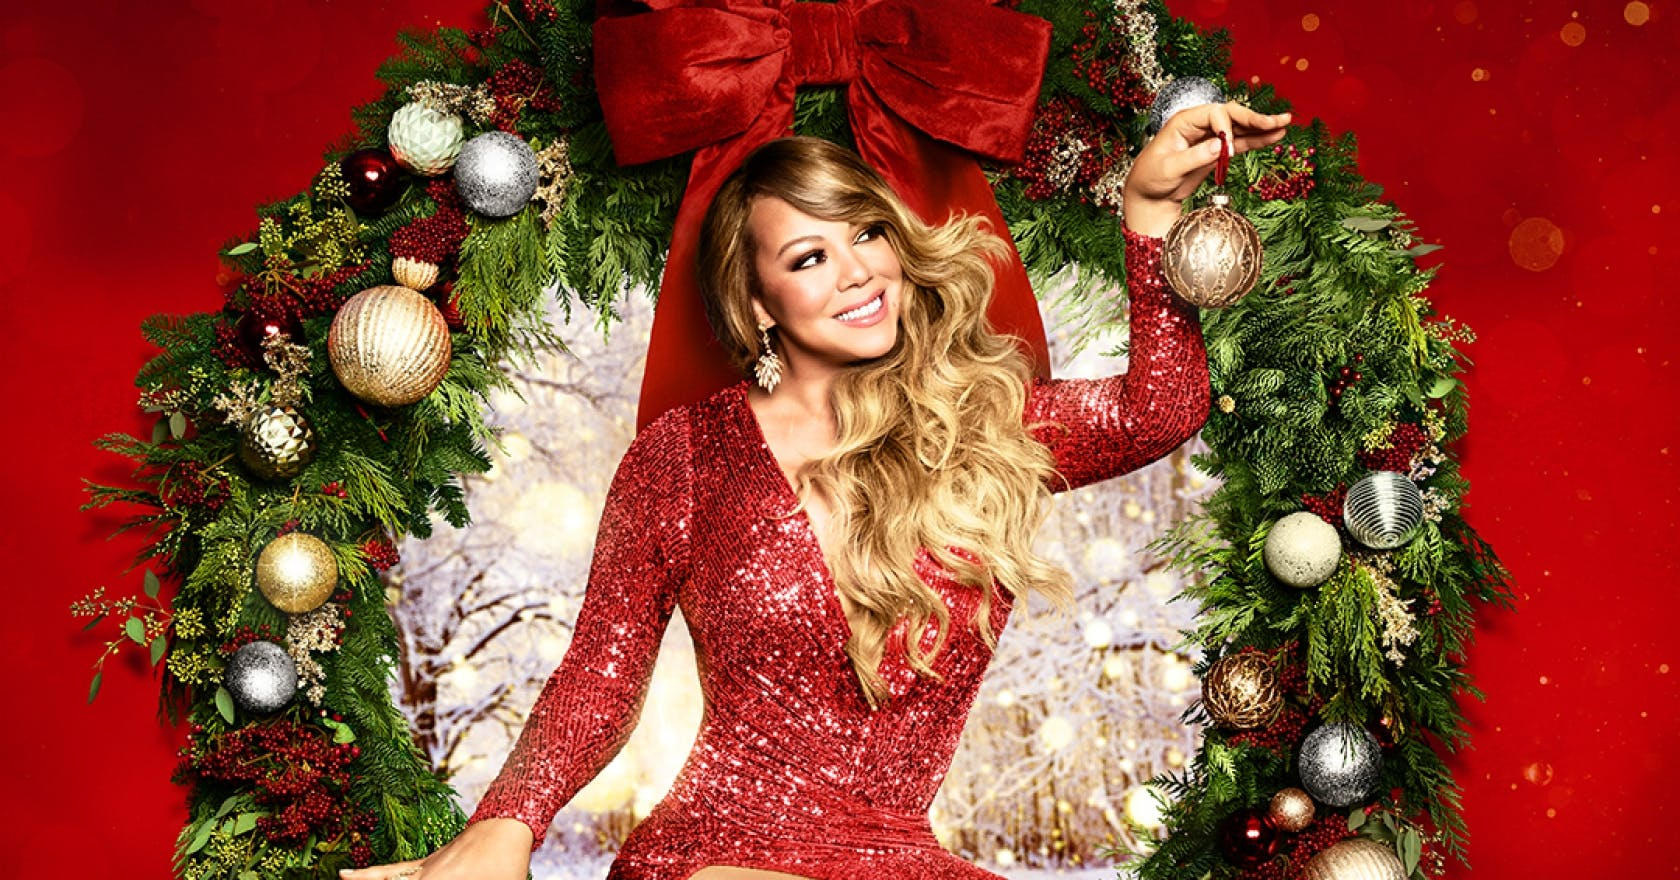 Mariah Carey's star-studded Christmas extravaganza is the TV we need right now